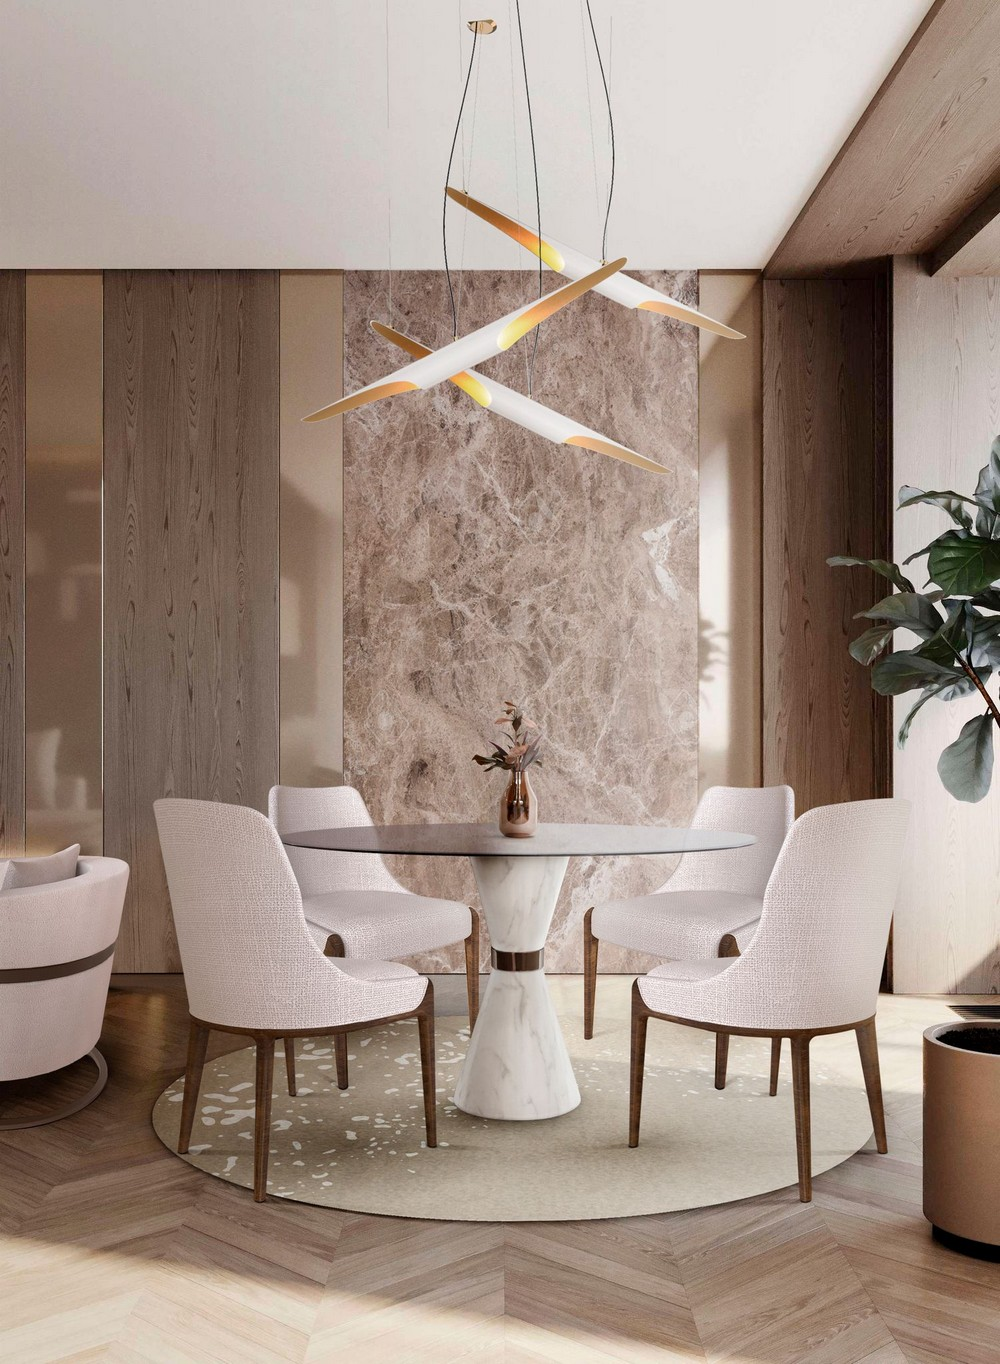 Luxury Dining Chairs To Transform Your Next Dining Room Project dining chairs Luxury Dining Chairs To Transform Your Next Dining Room Project BvpSLYjg